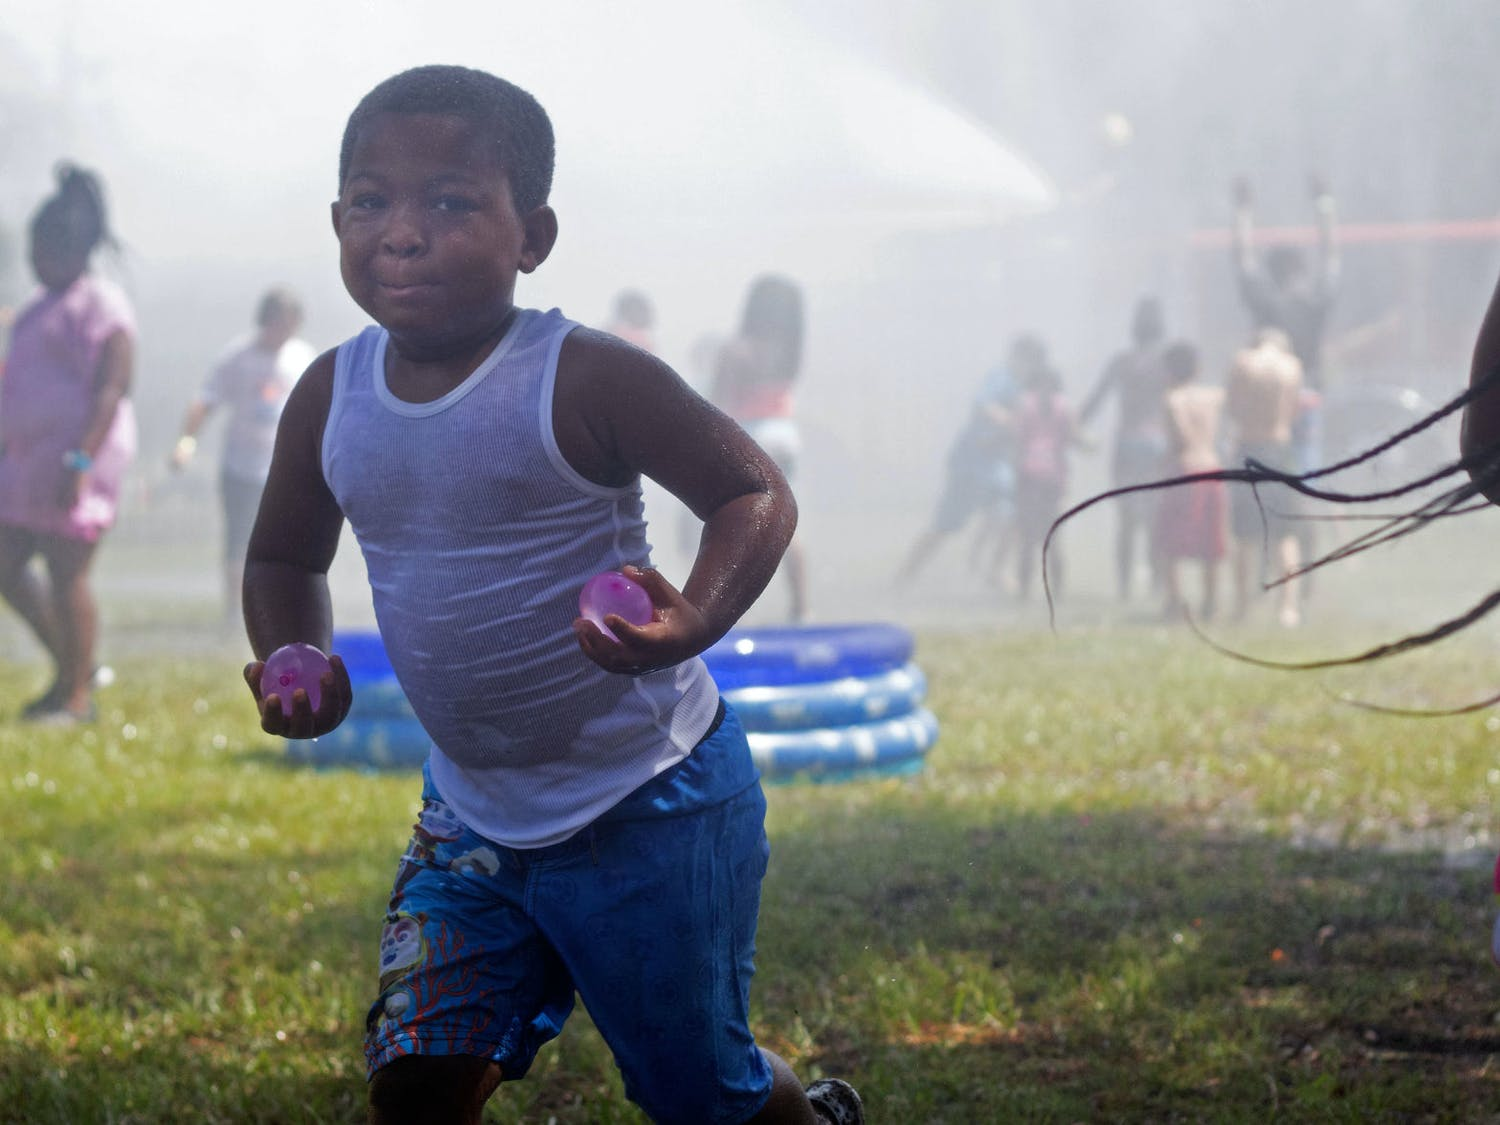 "Ja'Keil Norris, 5, runs away from the firetruck hose while carrying two water balloons Saturday during Beat the Heat Water Day. The event featured kids-versus-cops water balloon battles along with blasts of water from the deck gun of a fire truck, which was advertised as ""the world's largest sprinkler"". Firefighters atop the firetruck would spray water over the children about every ten minutes."